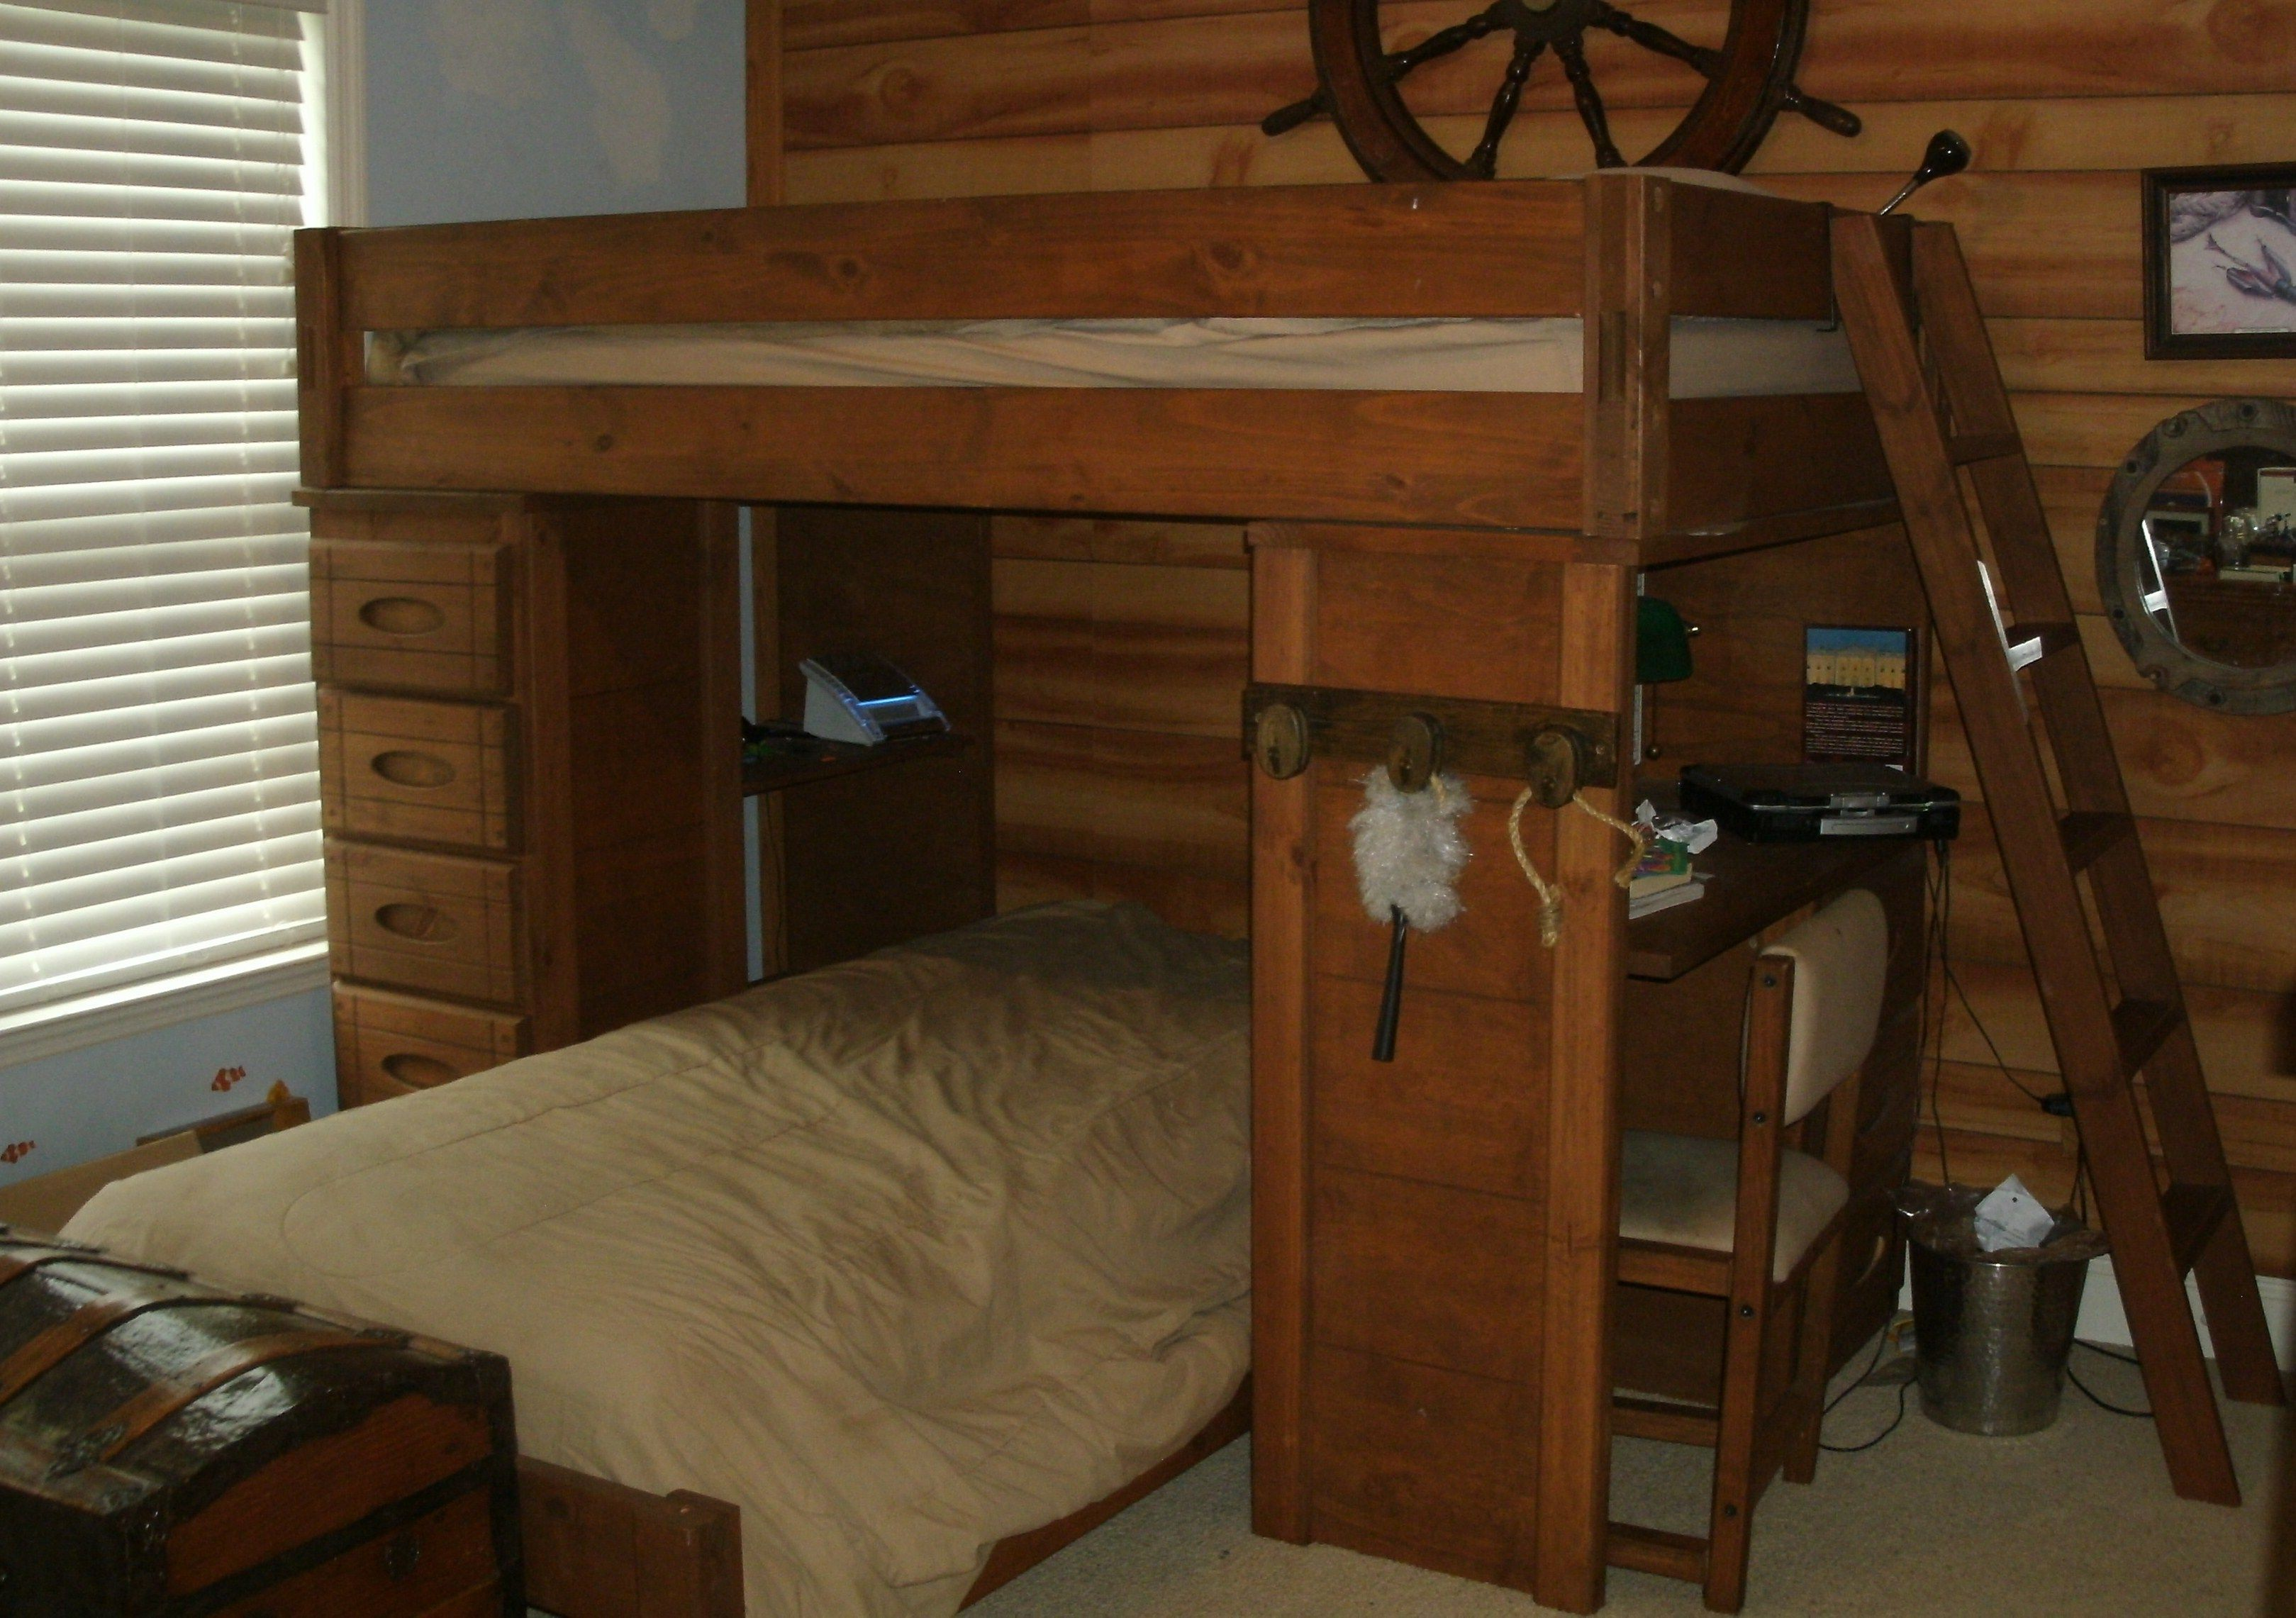 plans full building bedroom black twinfull with bunk stairs over drawers trundle and beds winning columbia queen for loft twin cool